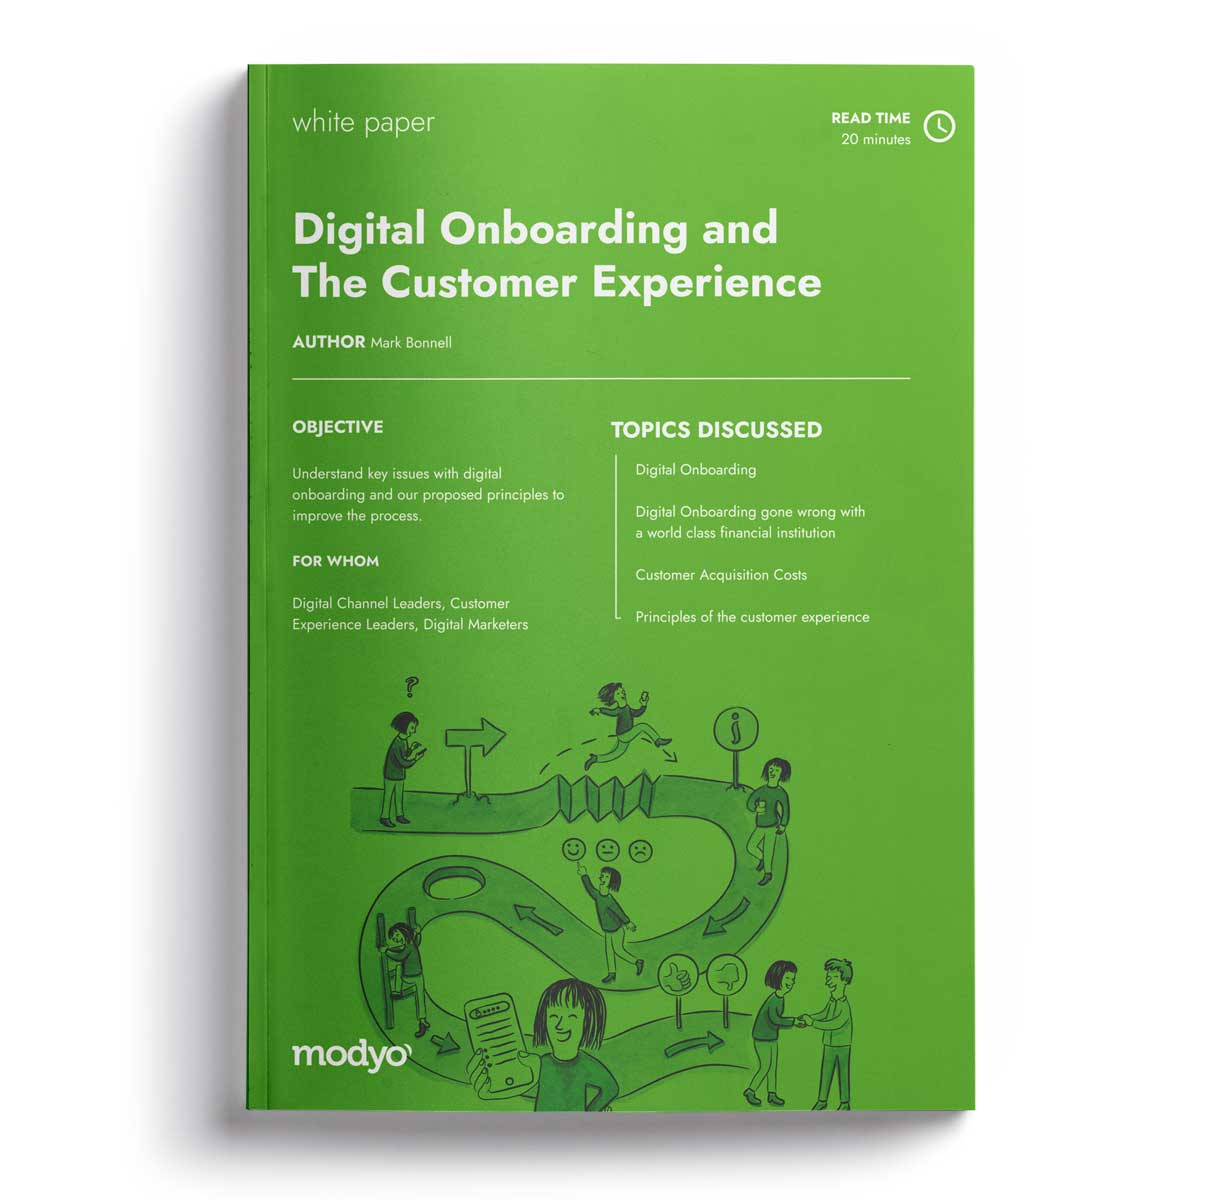 Digital Onboarding and the Customer Experience